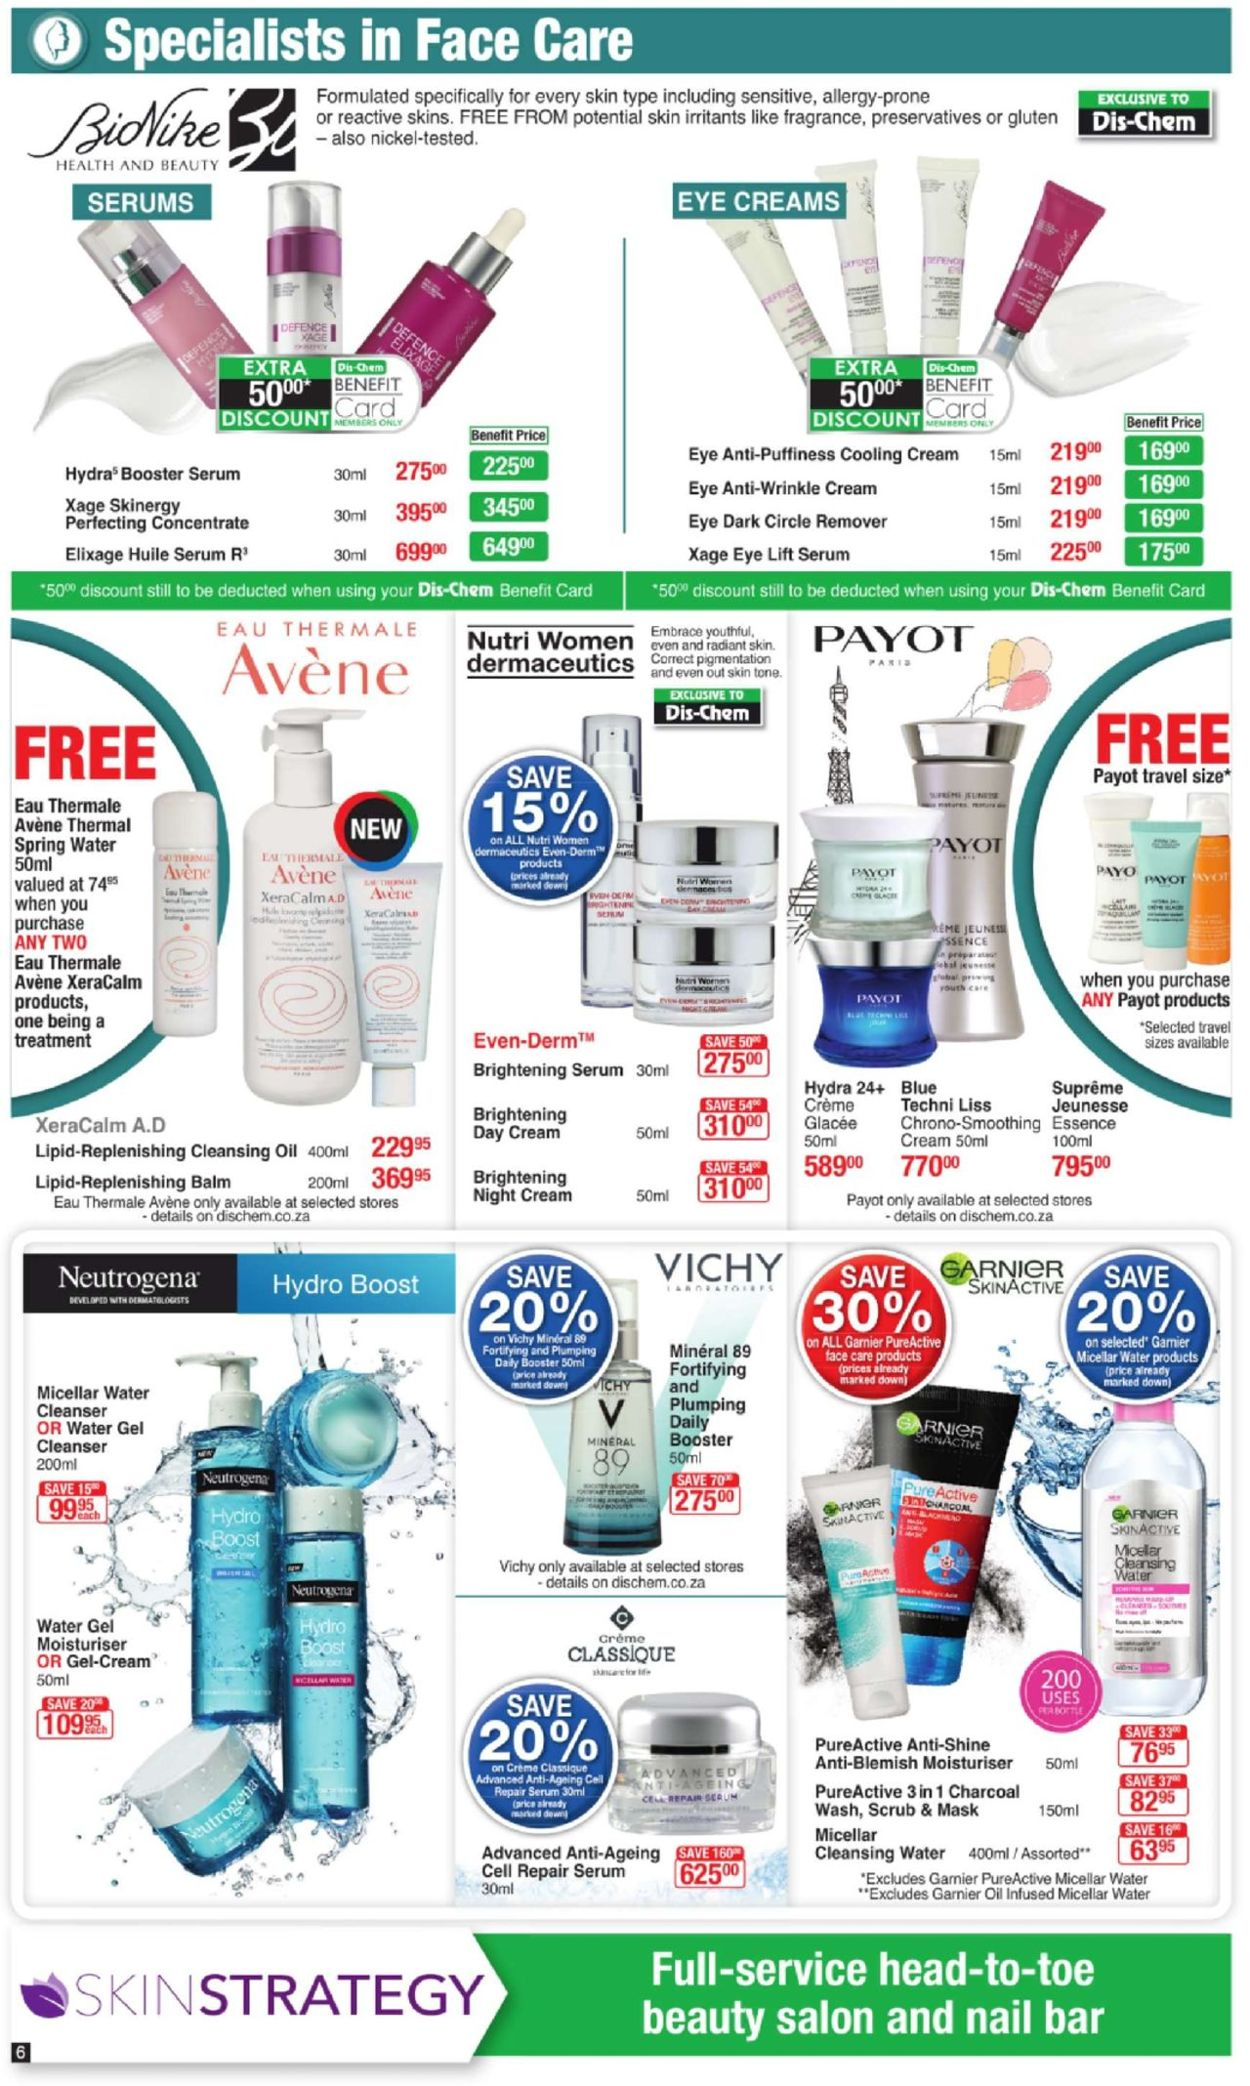 Care Payot Skin Products